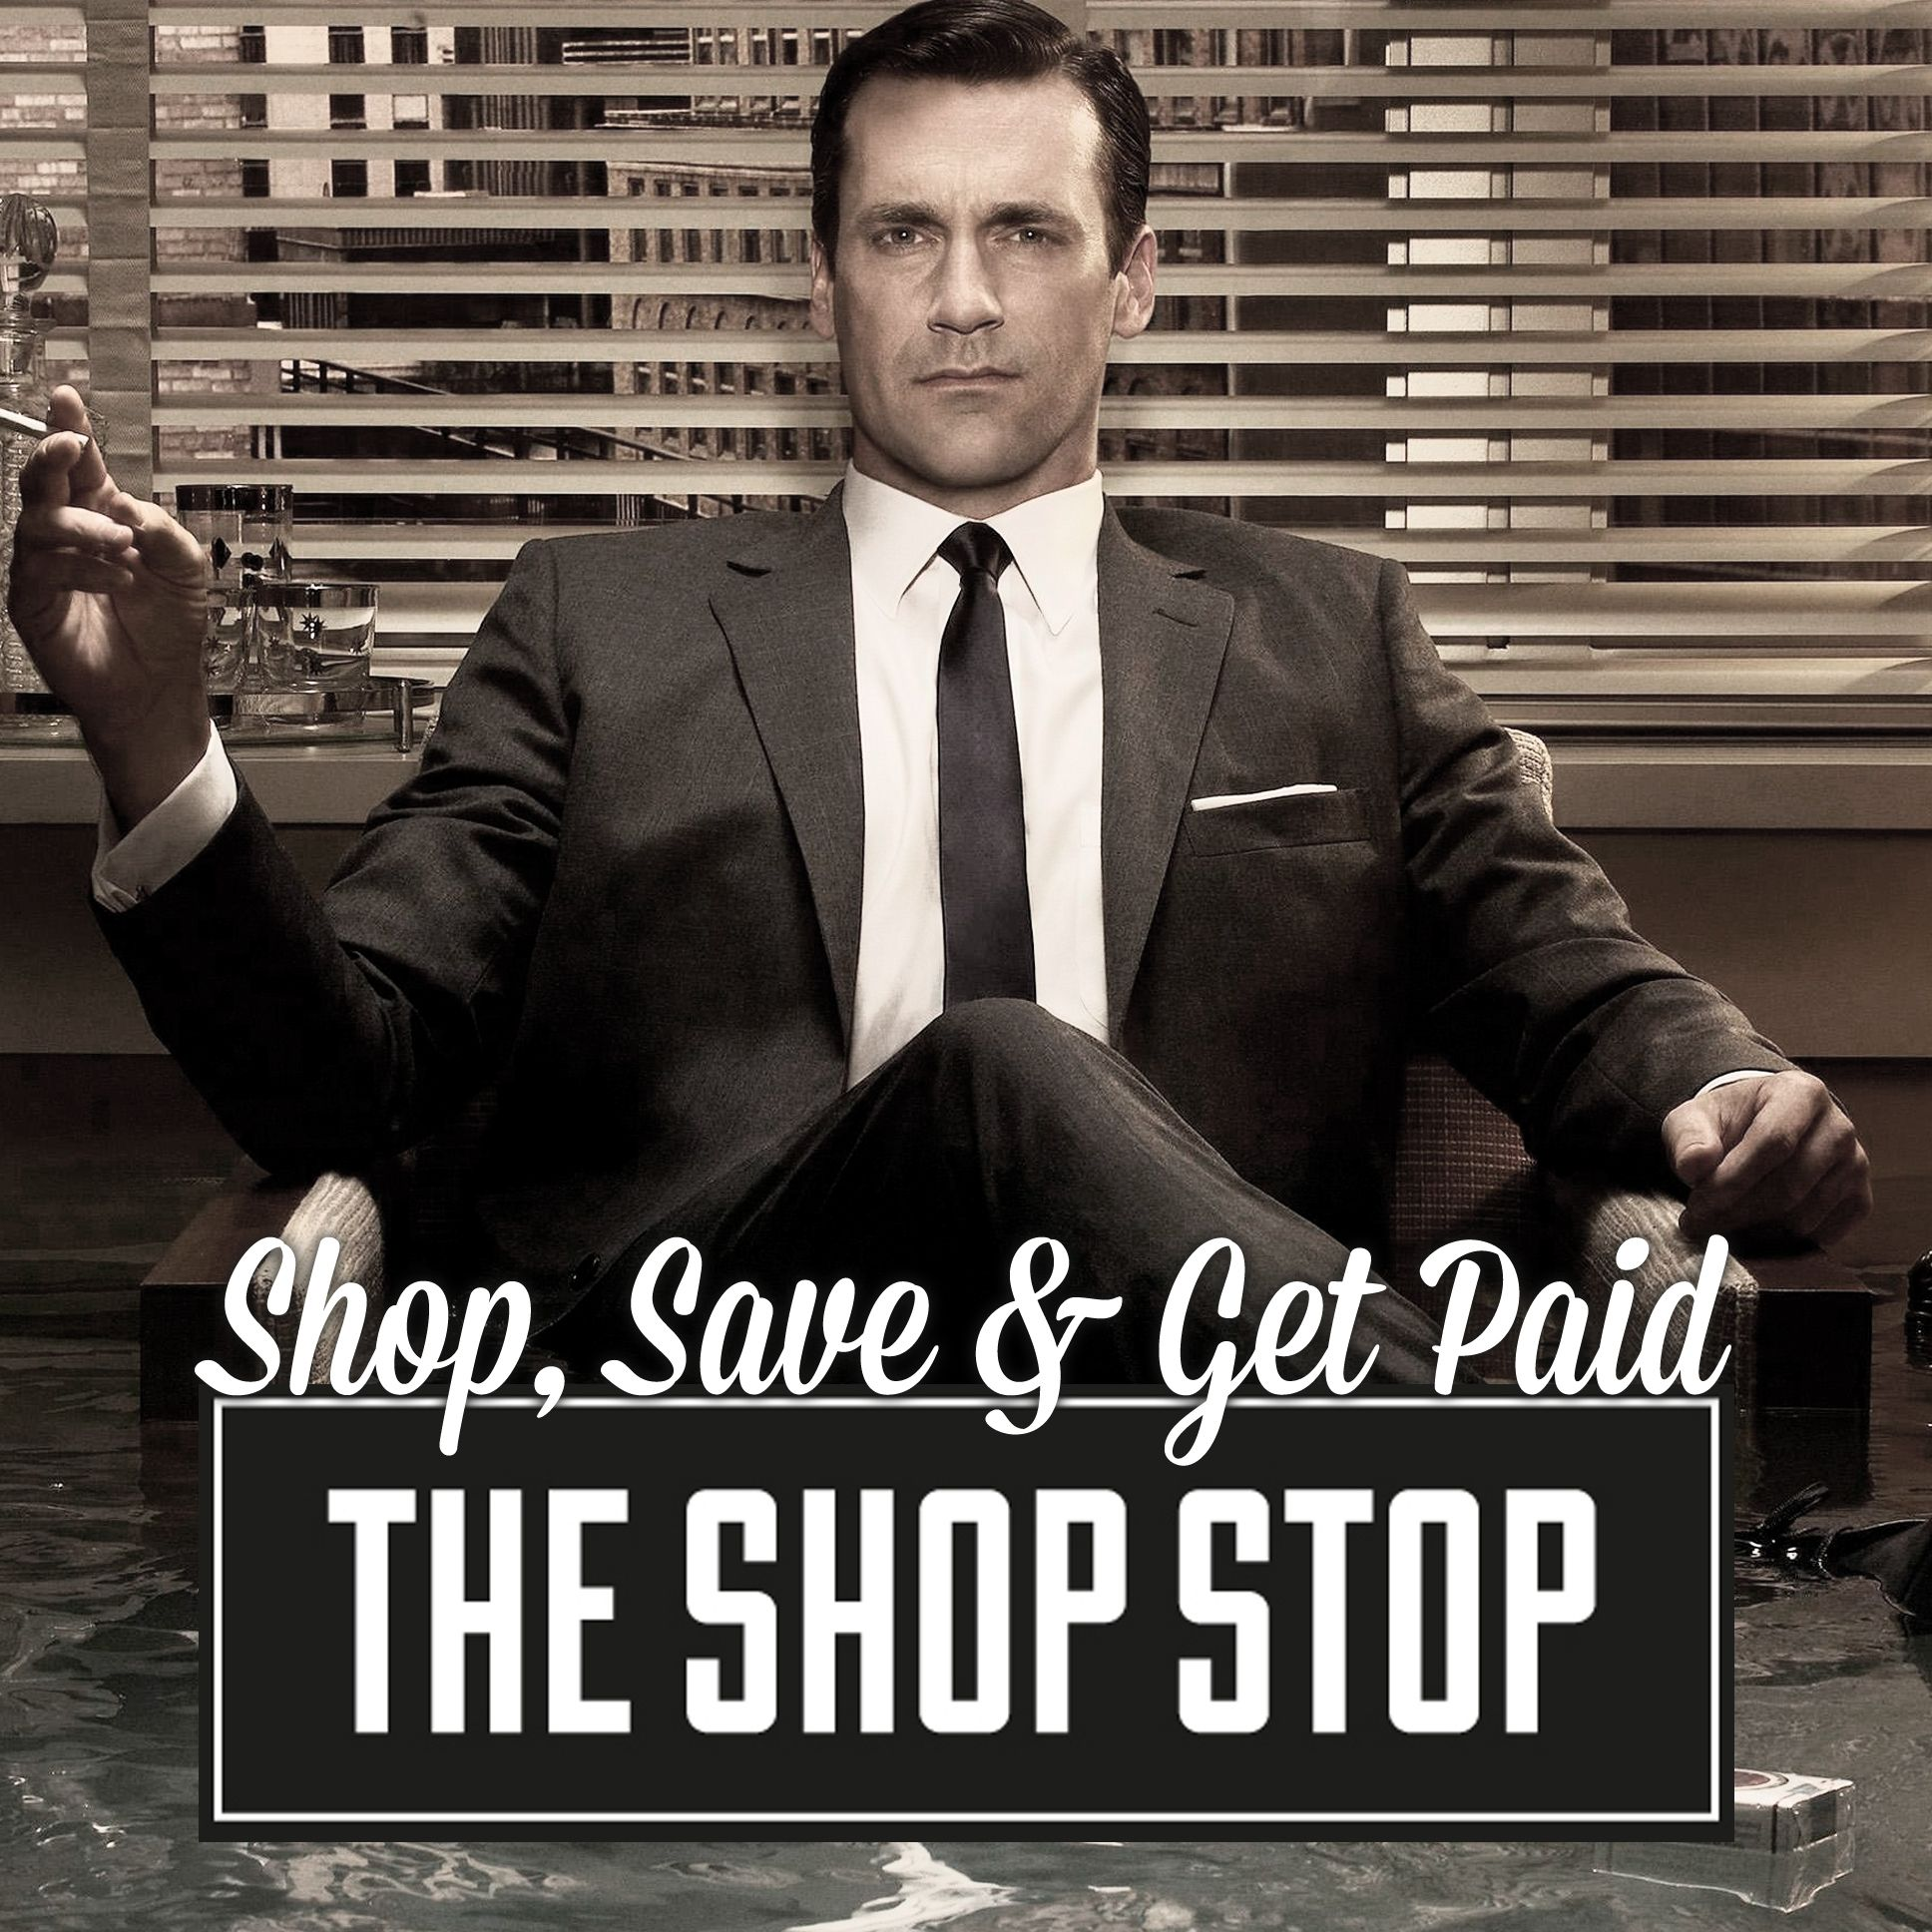 Shop, save and get paid Draper style mens fashion